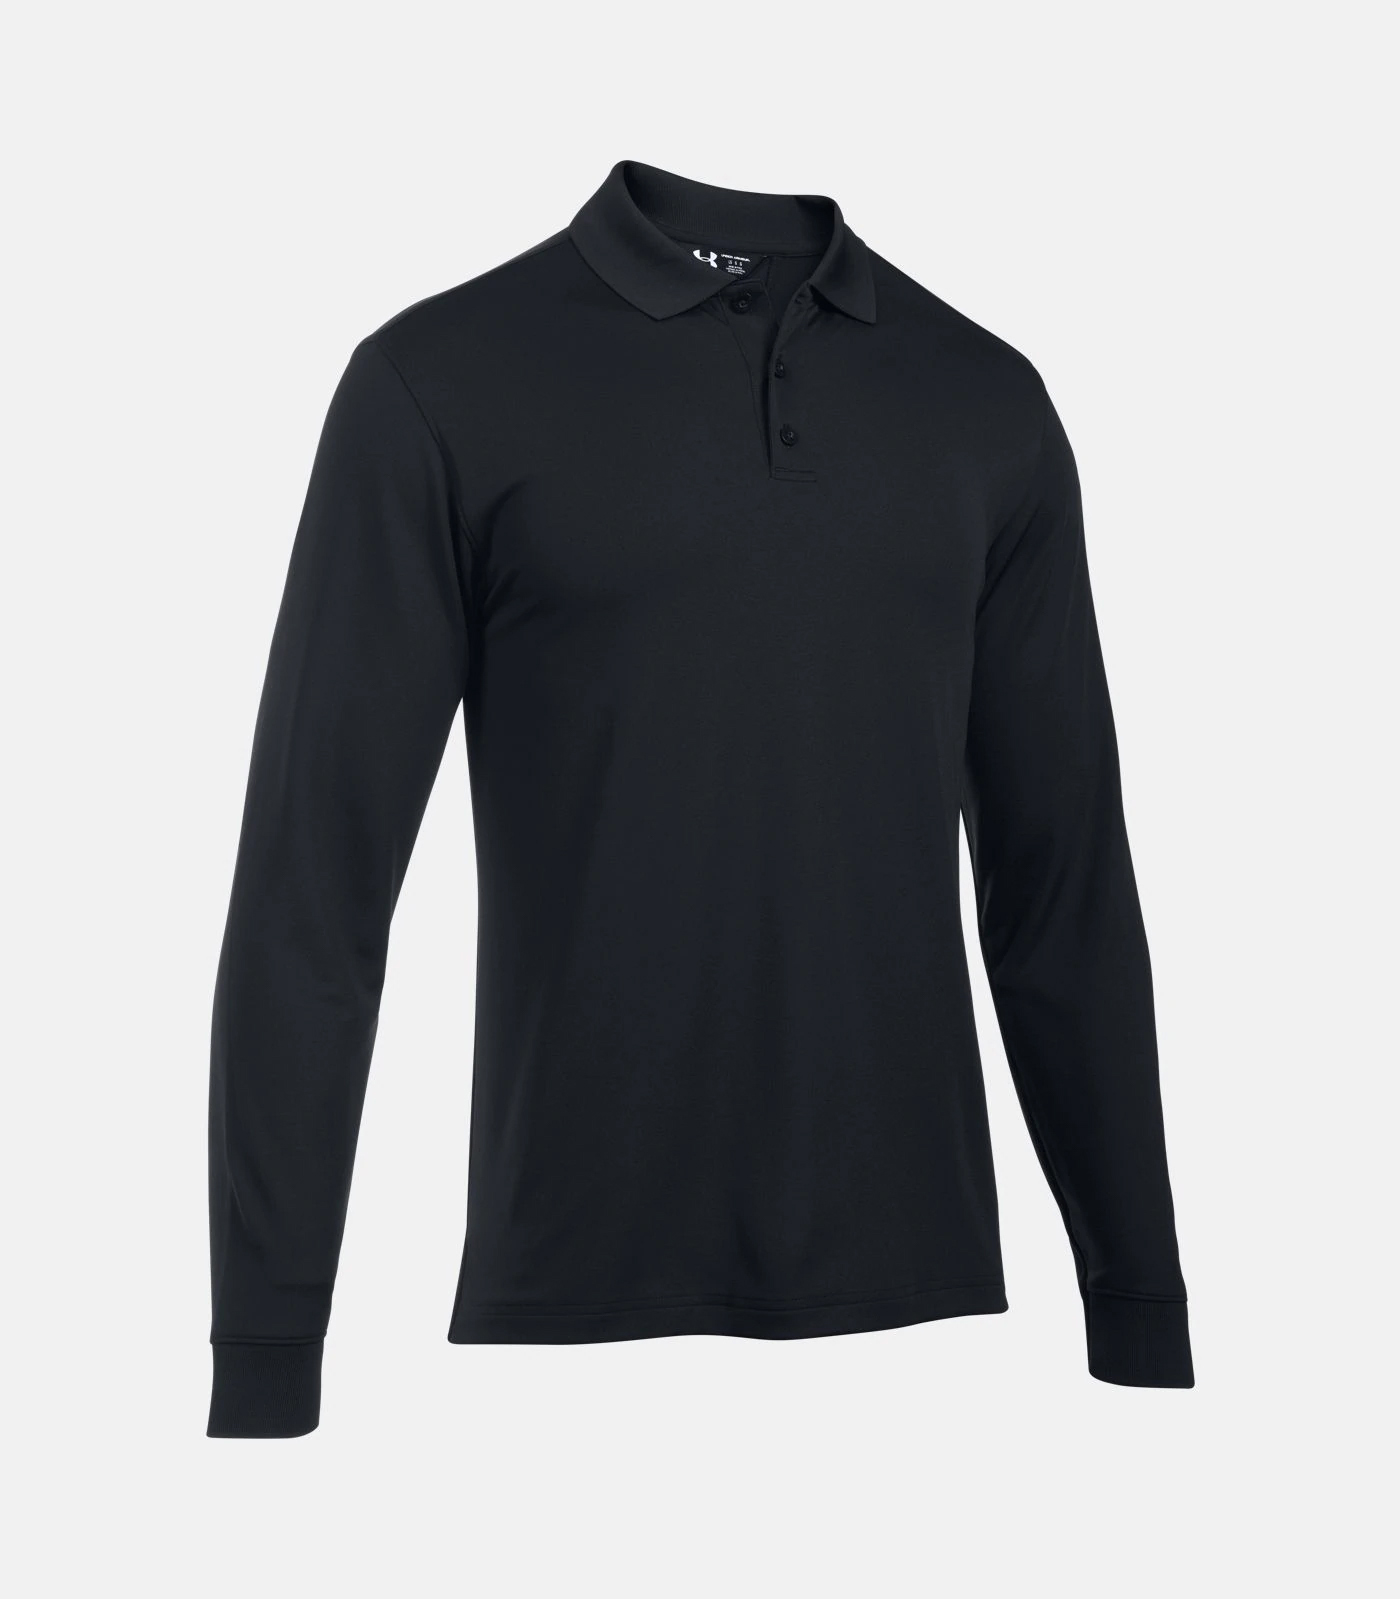 MENS_POLO_TacPerformance-LS_UAR1279637001_04